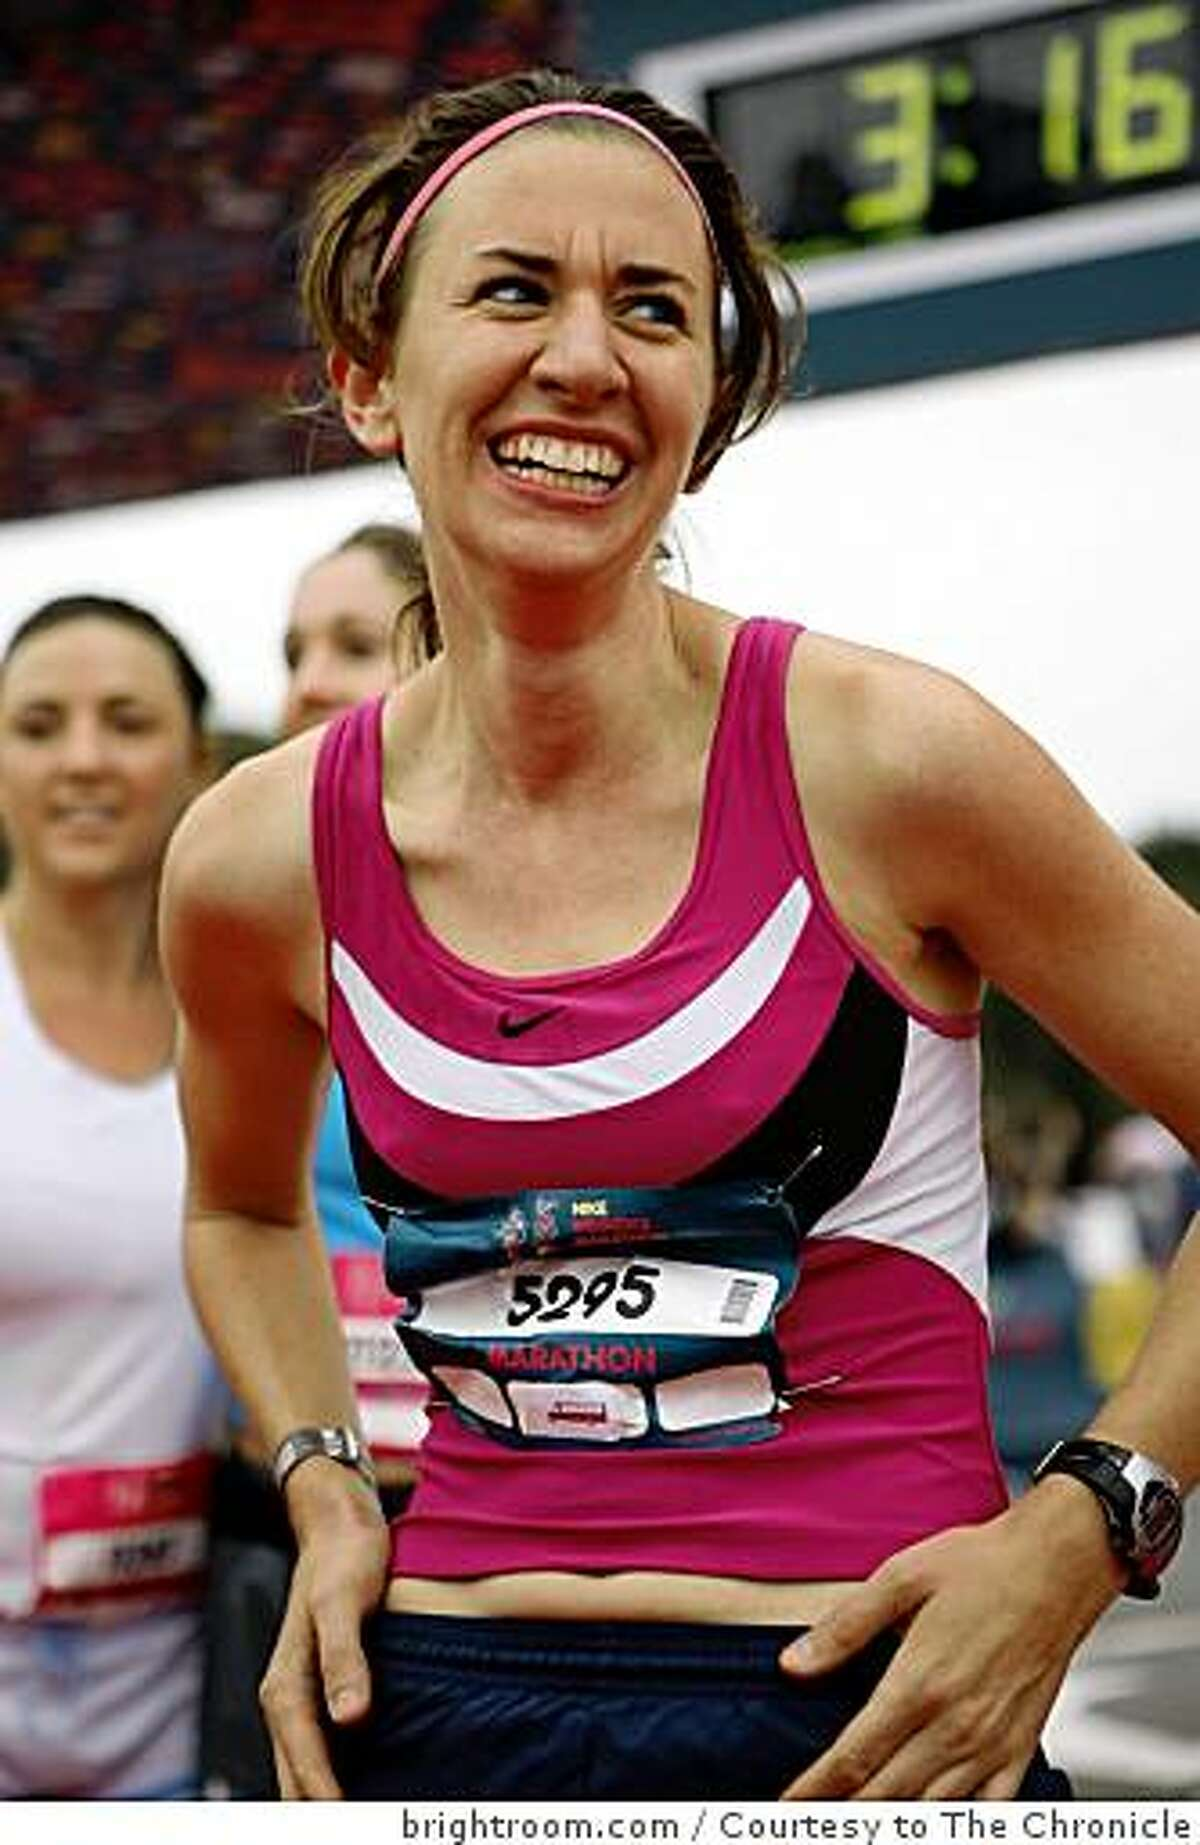 Arien O'Connell crosses the finish line at the Nike's Woman Marathon on Sunday, October 19, 2008 in San Francisco, Calif.